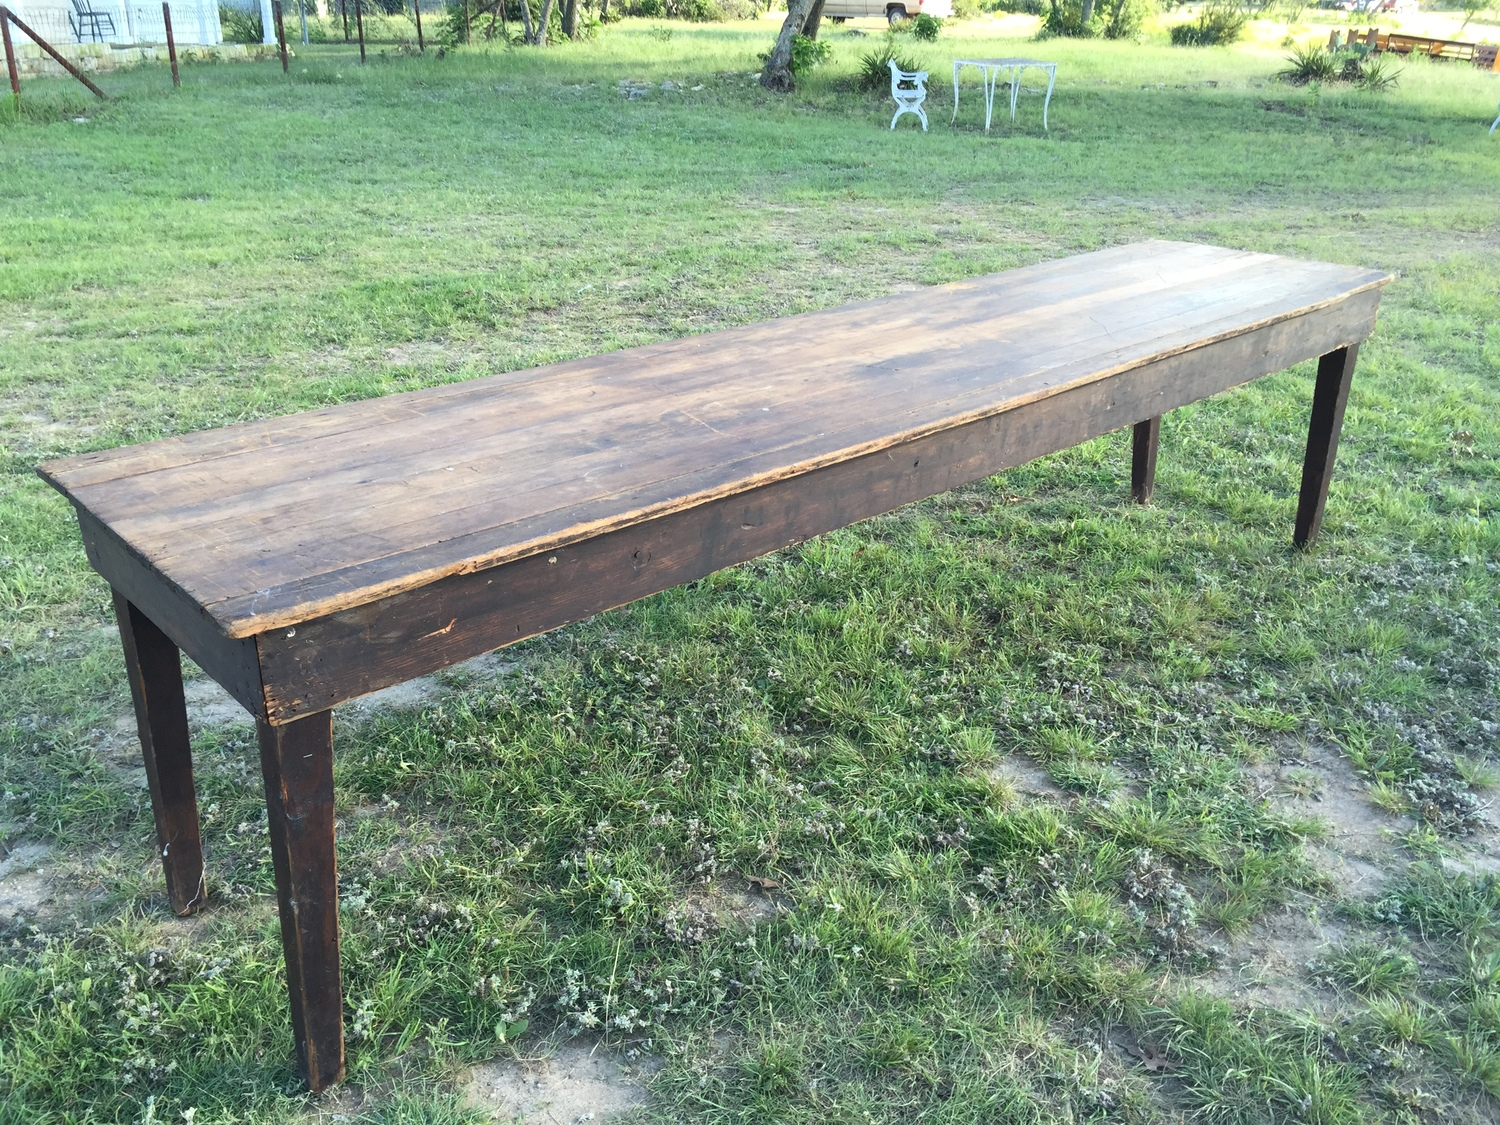 Vintage Farm Table Rentals Ft Dark Wood Farm Table - Dark wood farm table